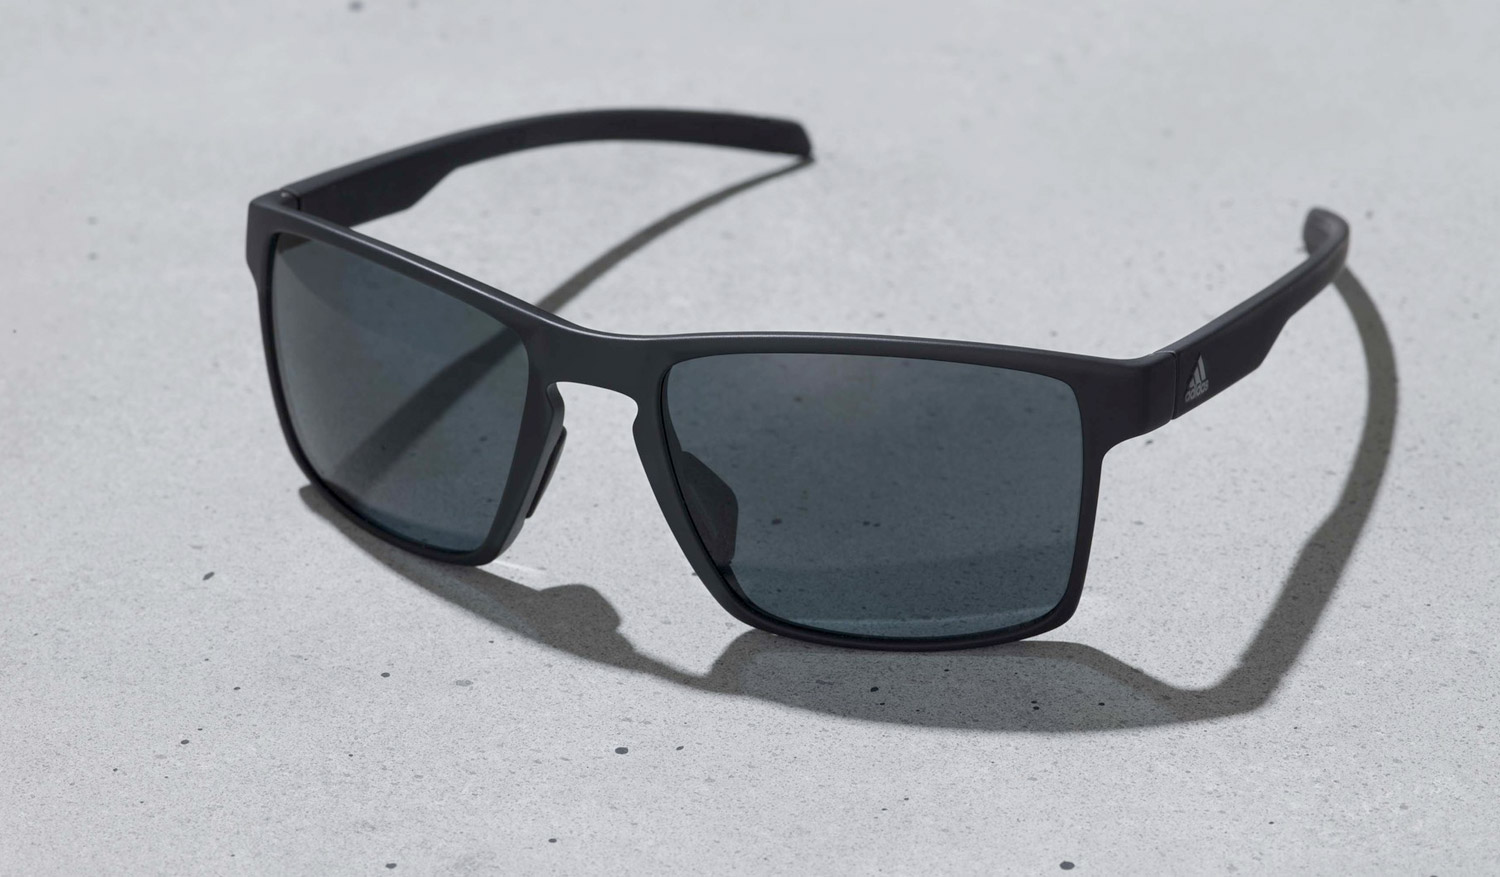 416b72135964 Fashion meets function in the active lifestyle series from Adidas Sport  Eyewear